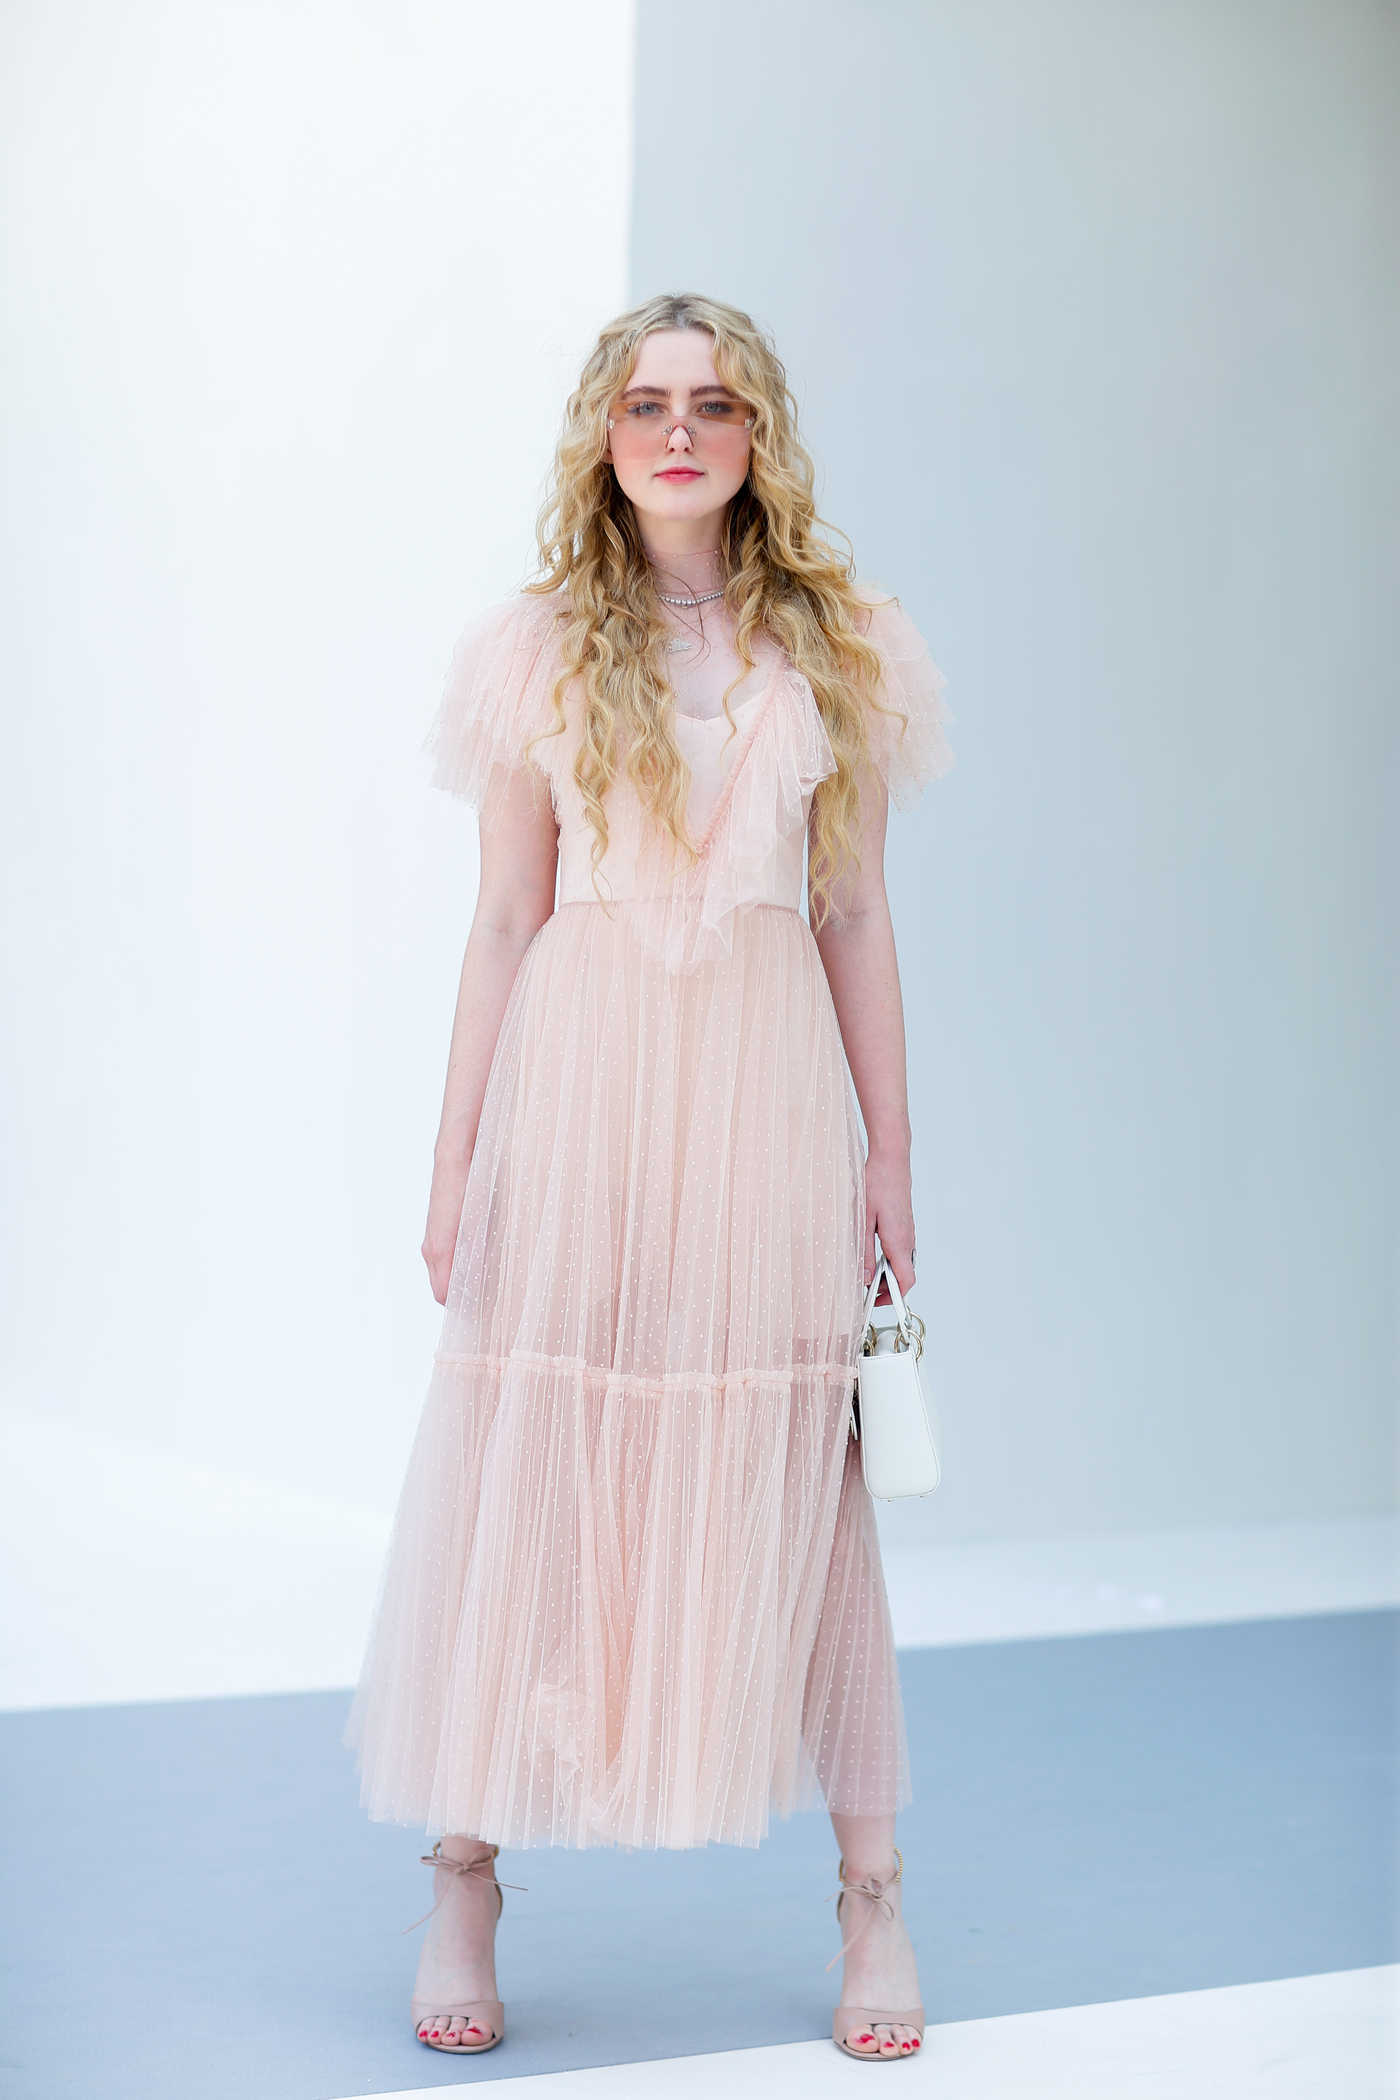 Kathryn Newton Attends 2018 Christian Dior Couture Haute Couture Show in Paris 07/02/2018